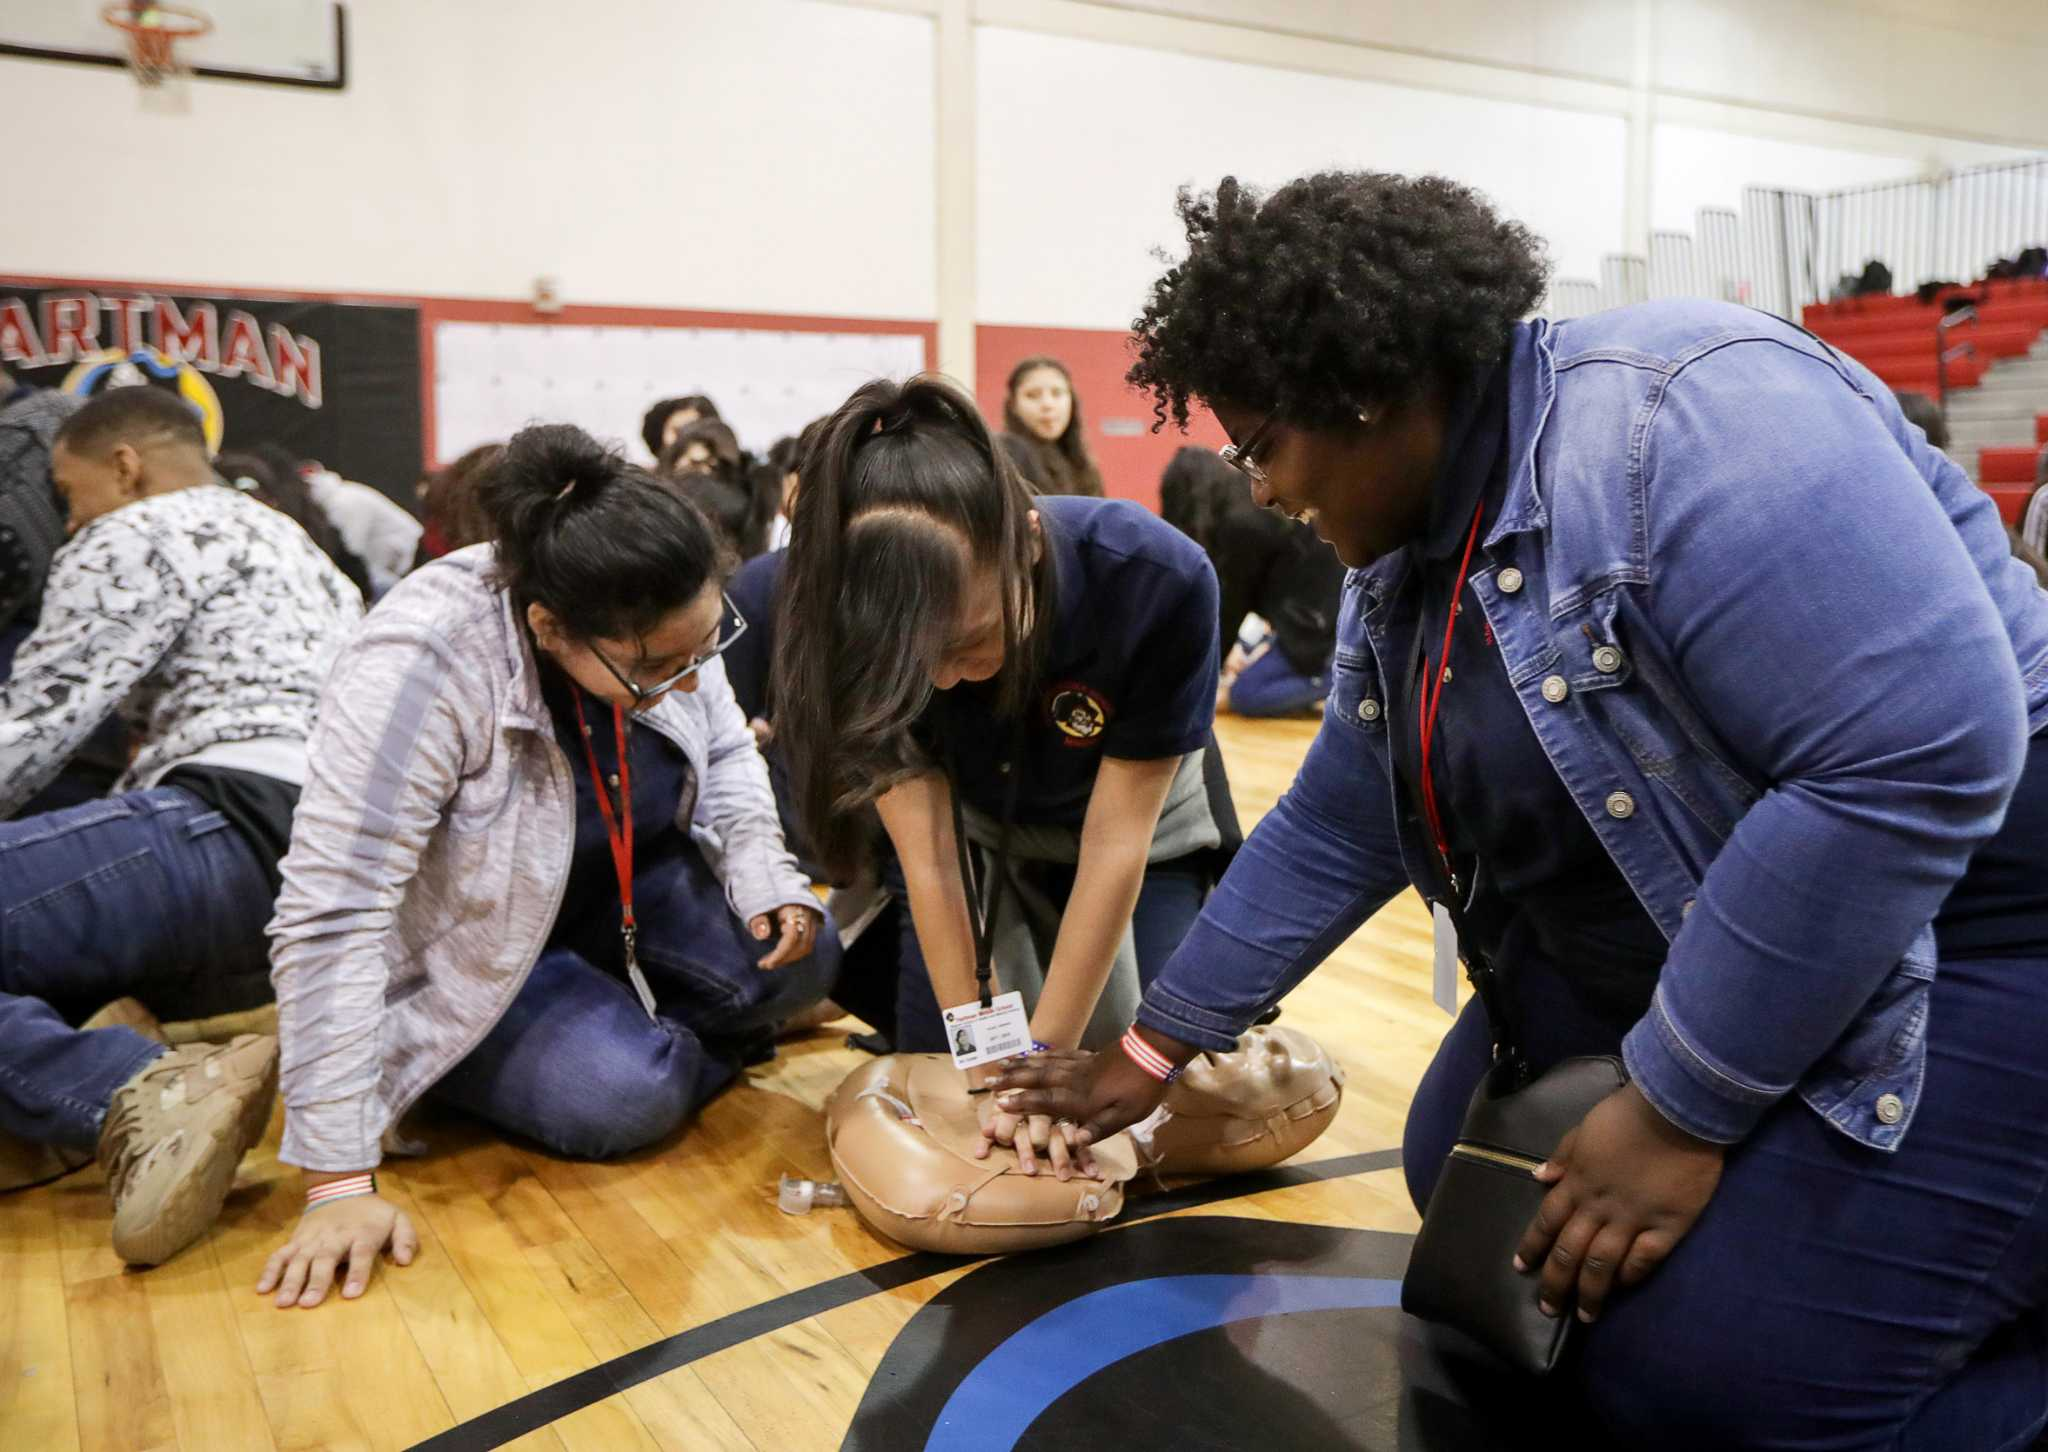 Black children less likely to receive bystander CPR, new study finds